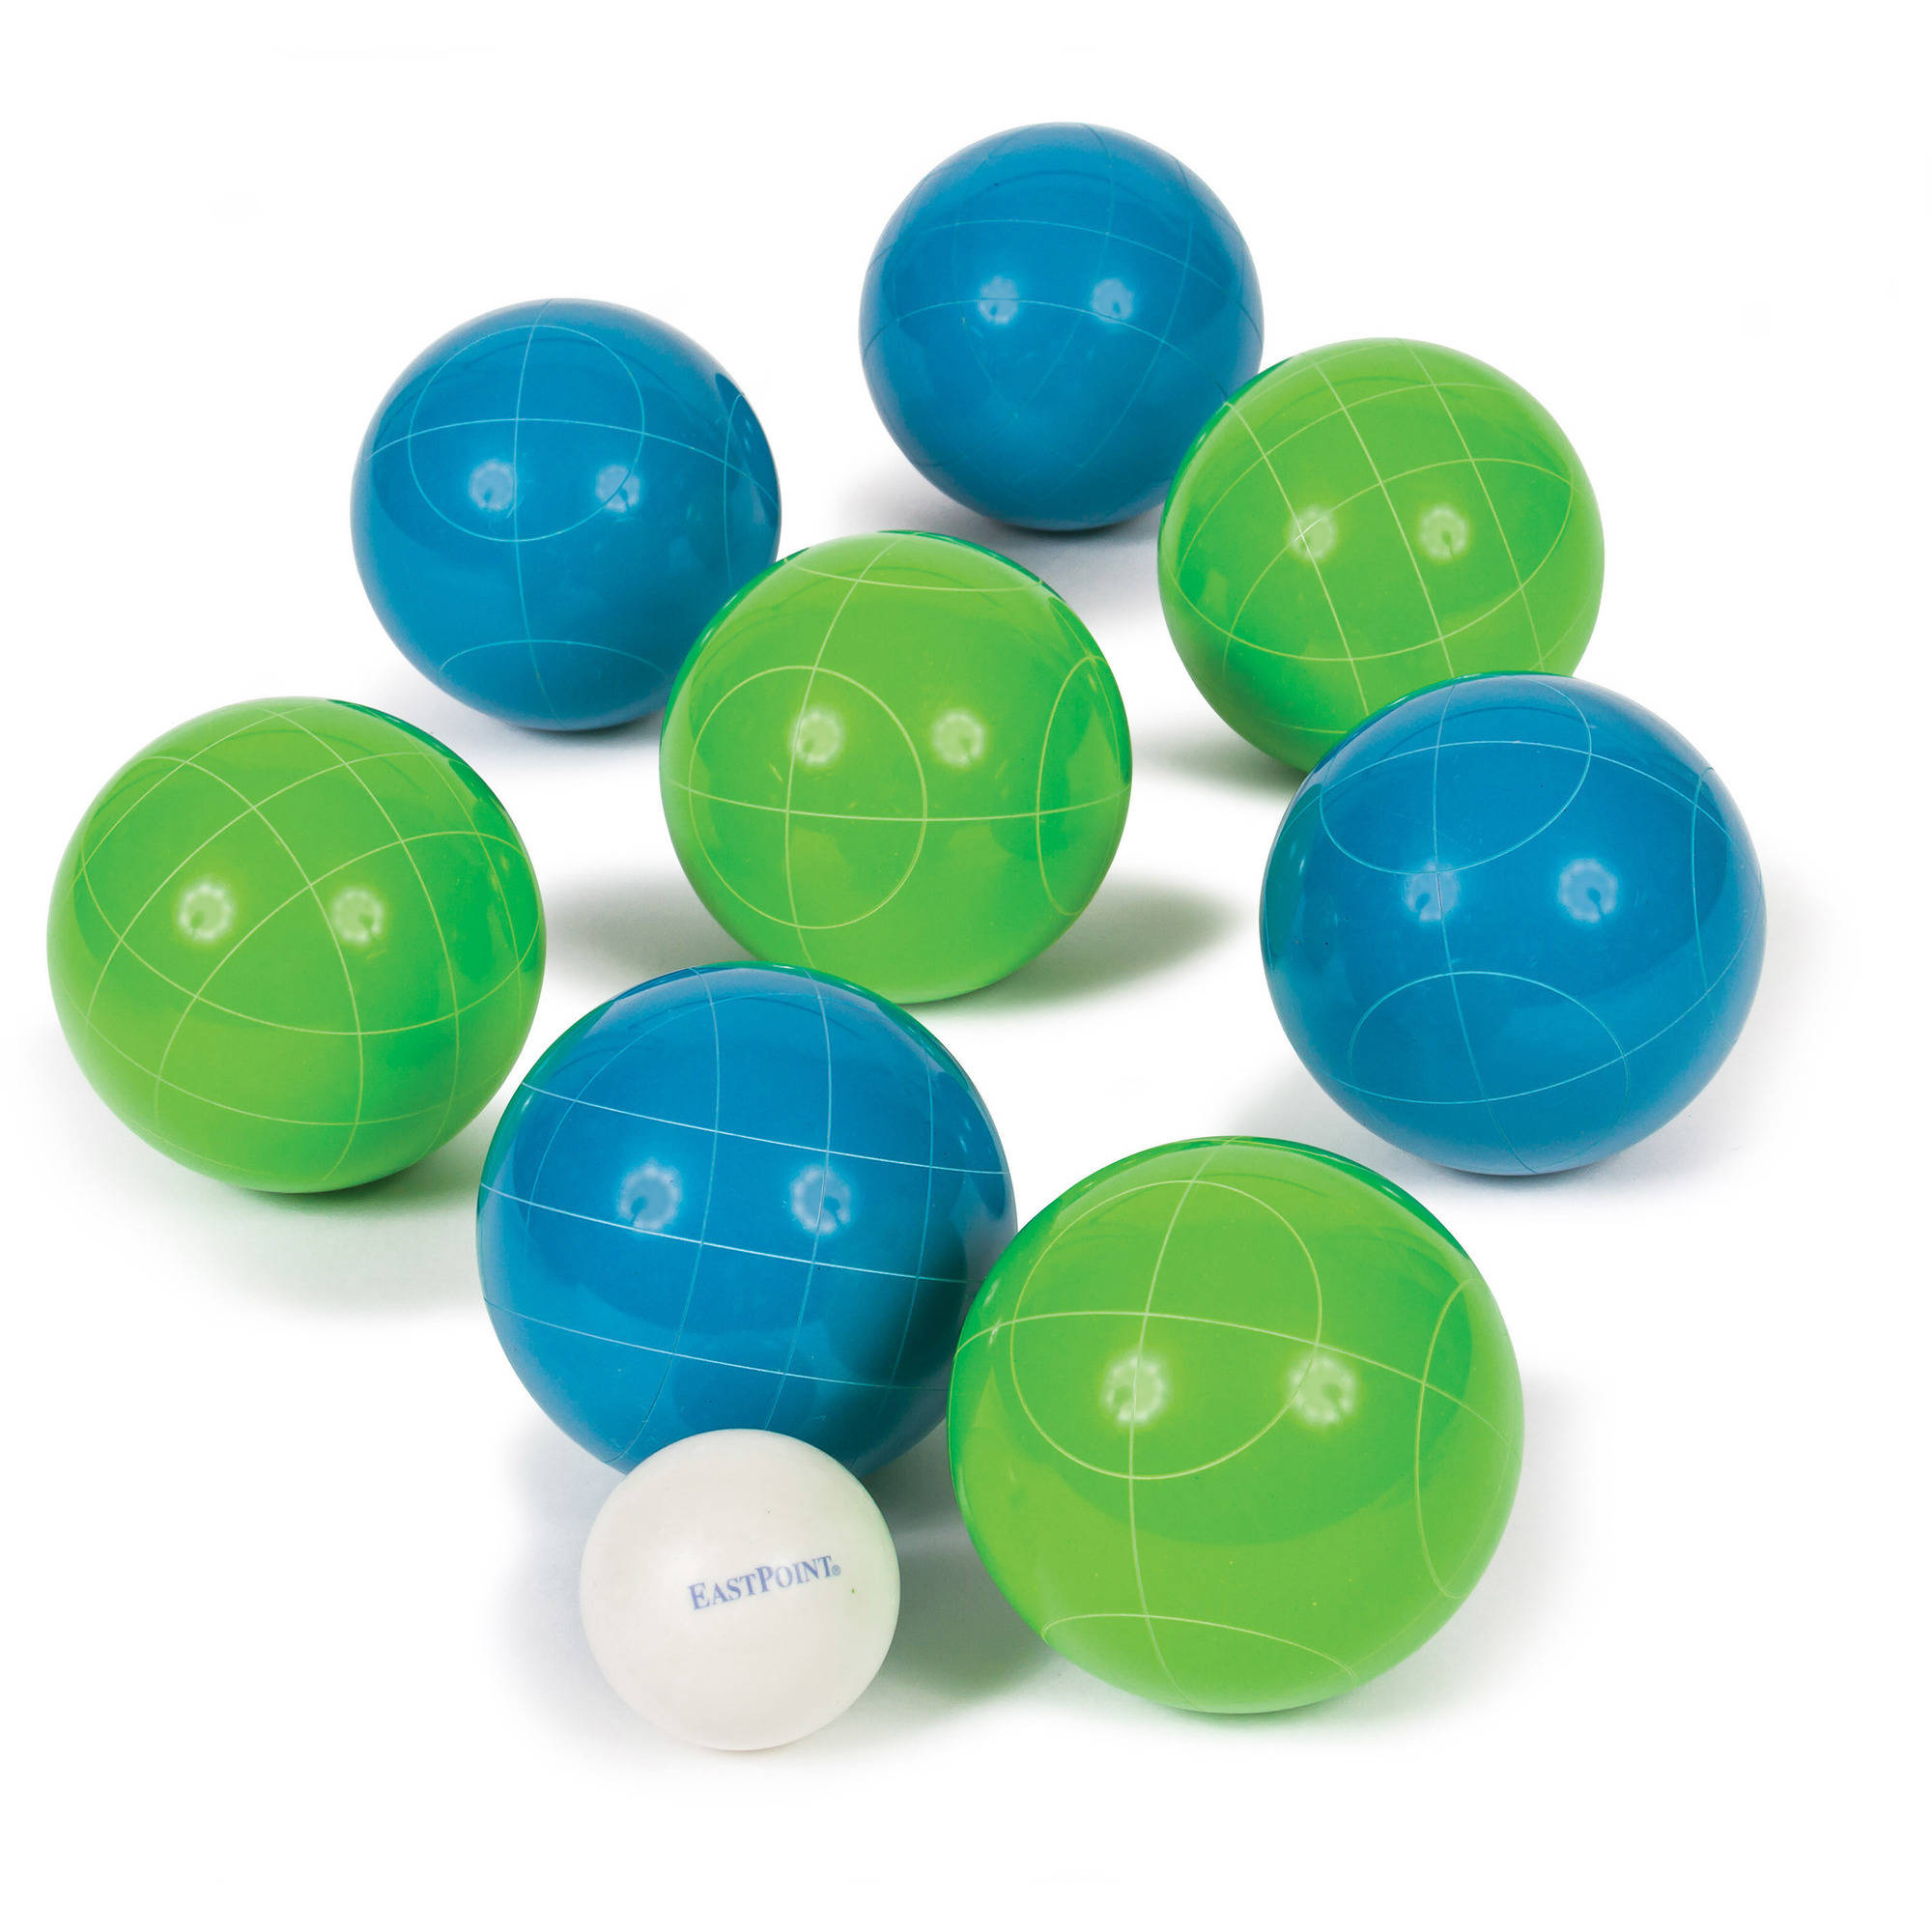 EastPoint Sports Premium 90mm Resin Bocce Lawn Game with Carrier